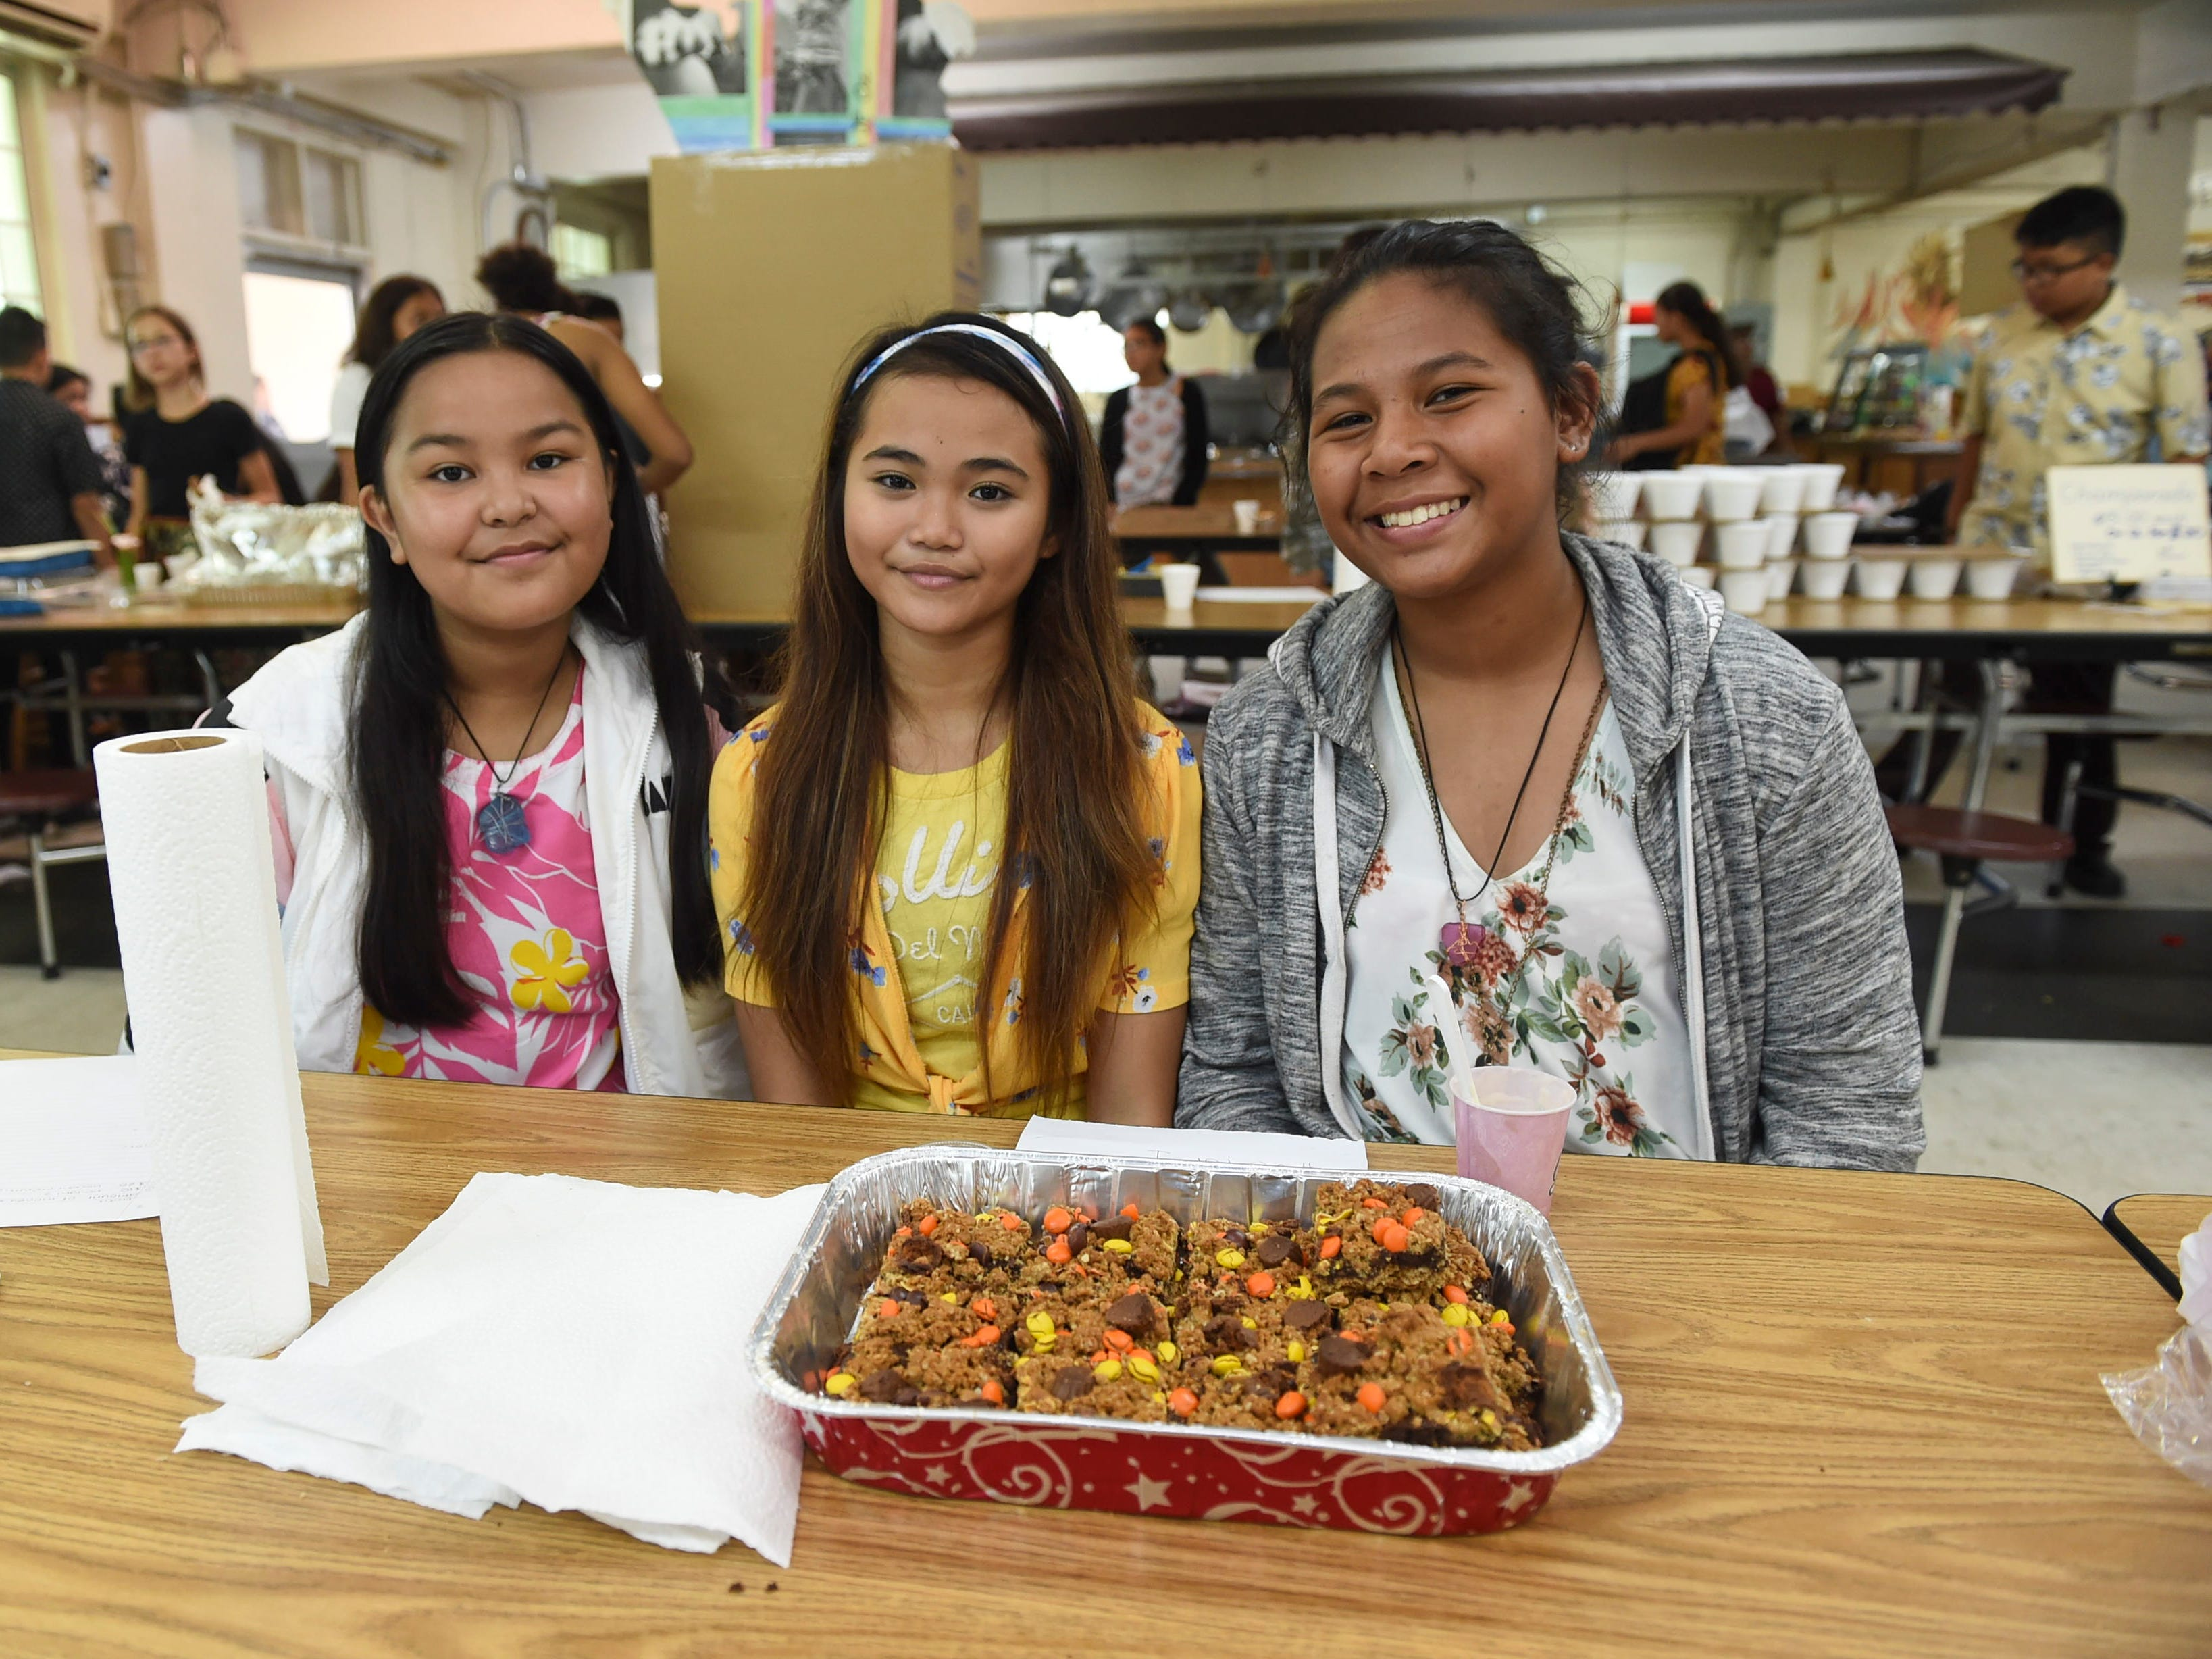 Seventh-grade students Malia Luty, 12, left, Hollie Mutzner, 12, center, and Veronique Pong, 12, during the 5th Annual Ysrael School of Business Retail Bazaar and Entrepreneur Fair at Our Lady of Mount Carmel Catholic School in Agat, Jan. 18, 2019.